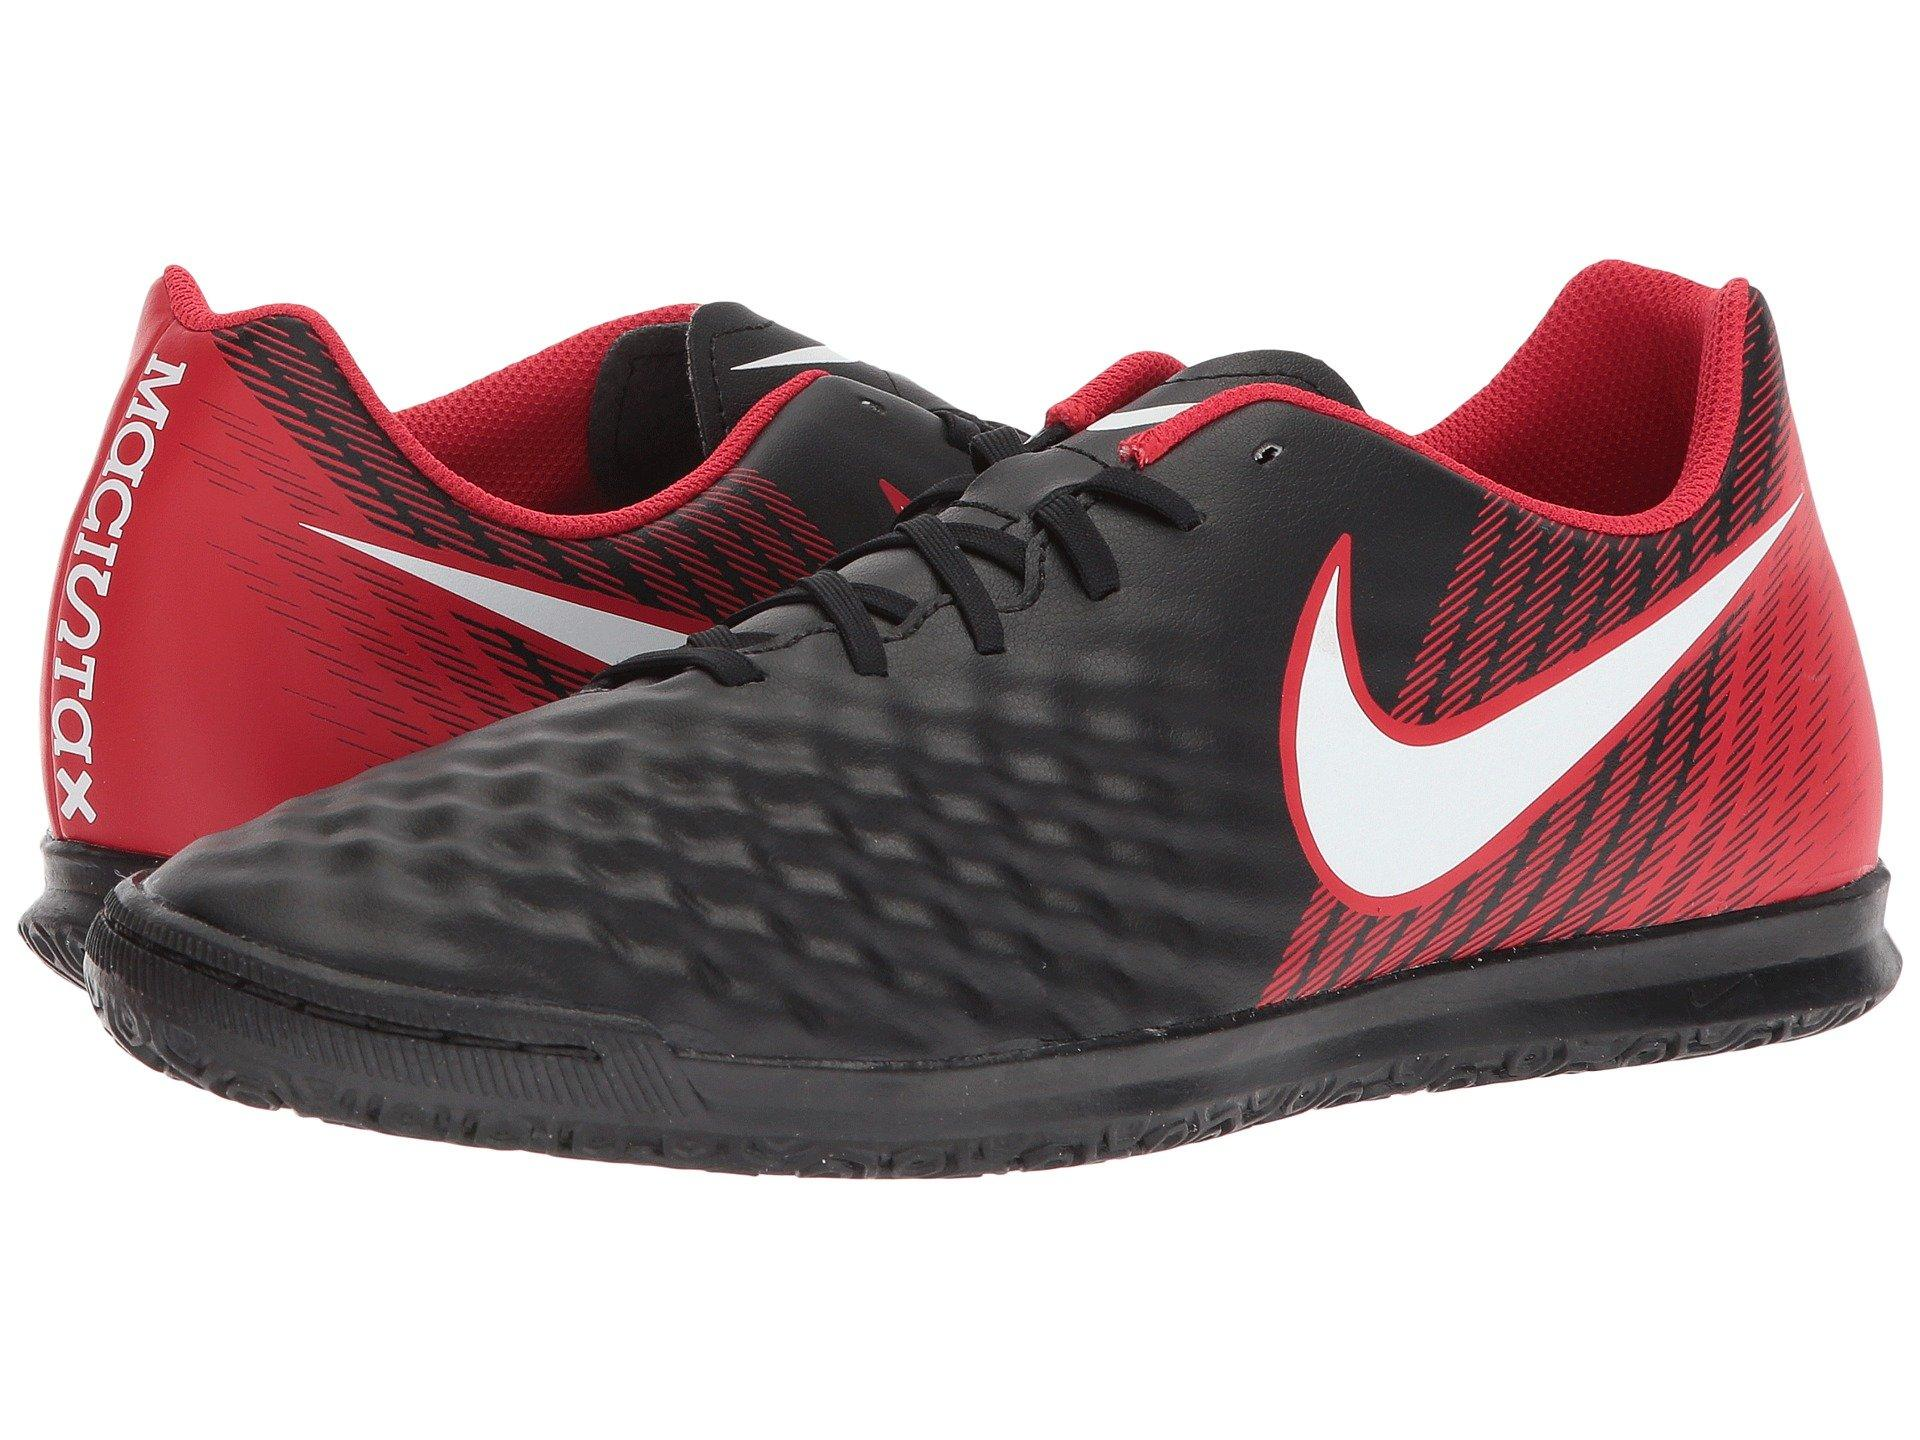 Nike Magista Ola Ii Ic In Black/white/university Red